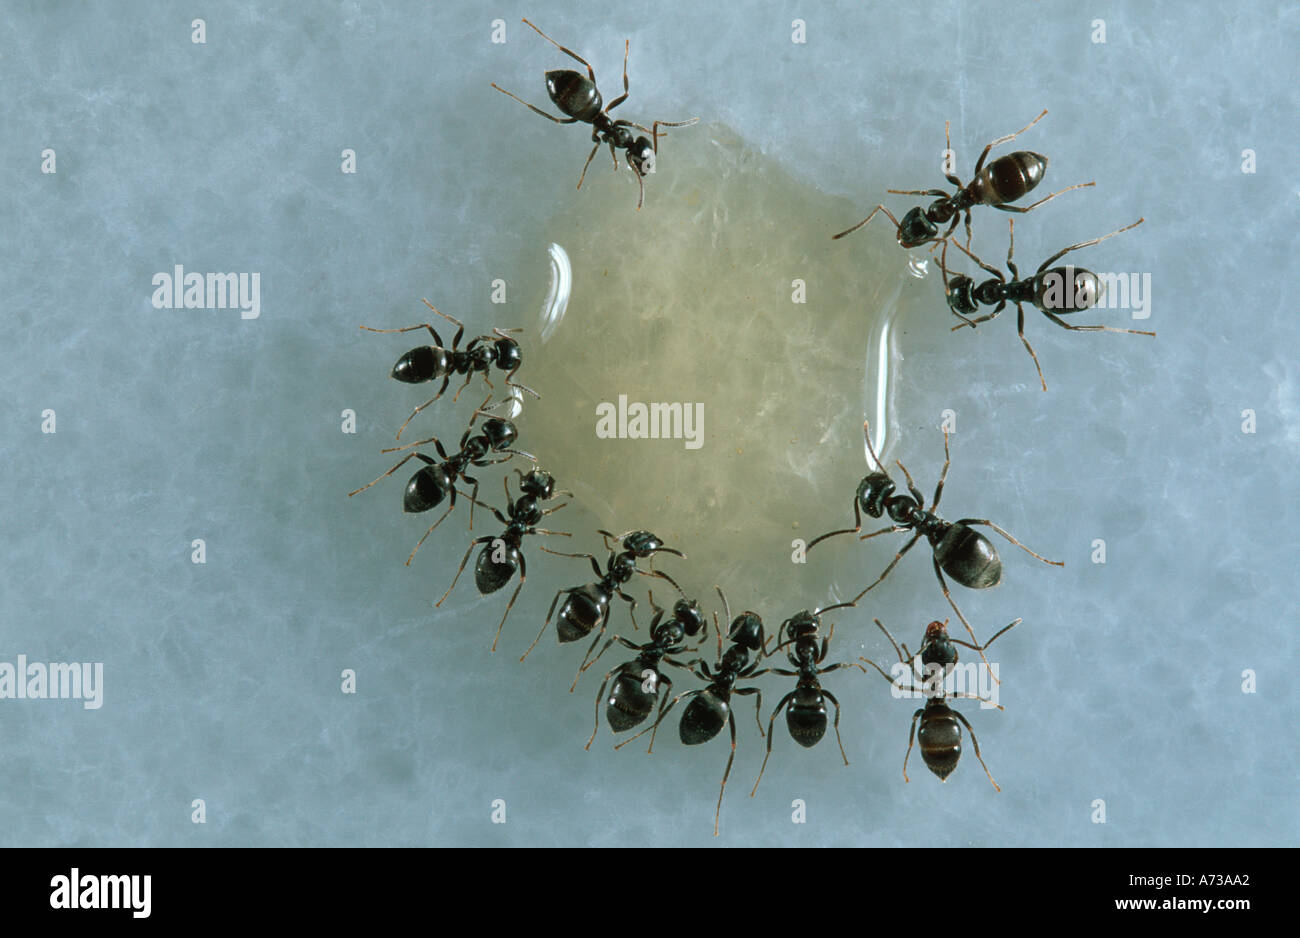 Ants In The House Stock Photos & Ants In The House Stock Images - Alamy